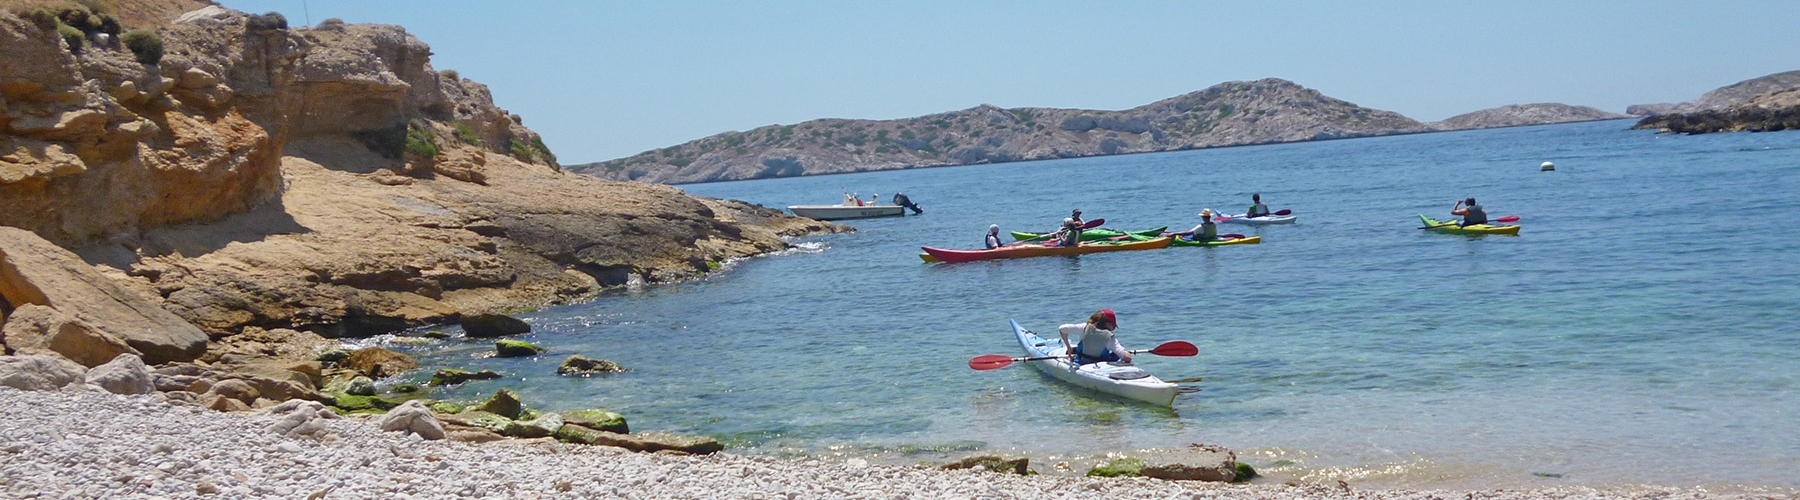 Week-end à Marseille - Kayak de mer